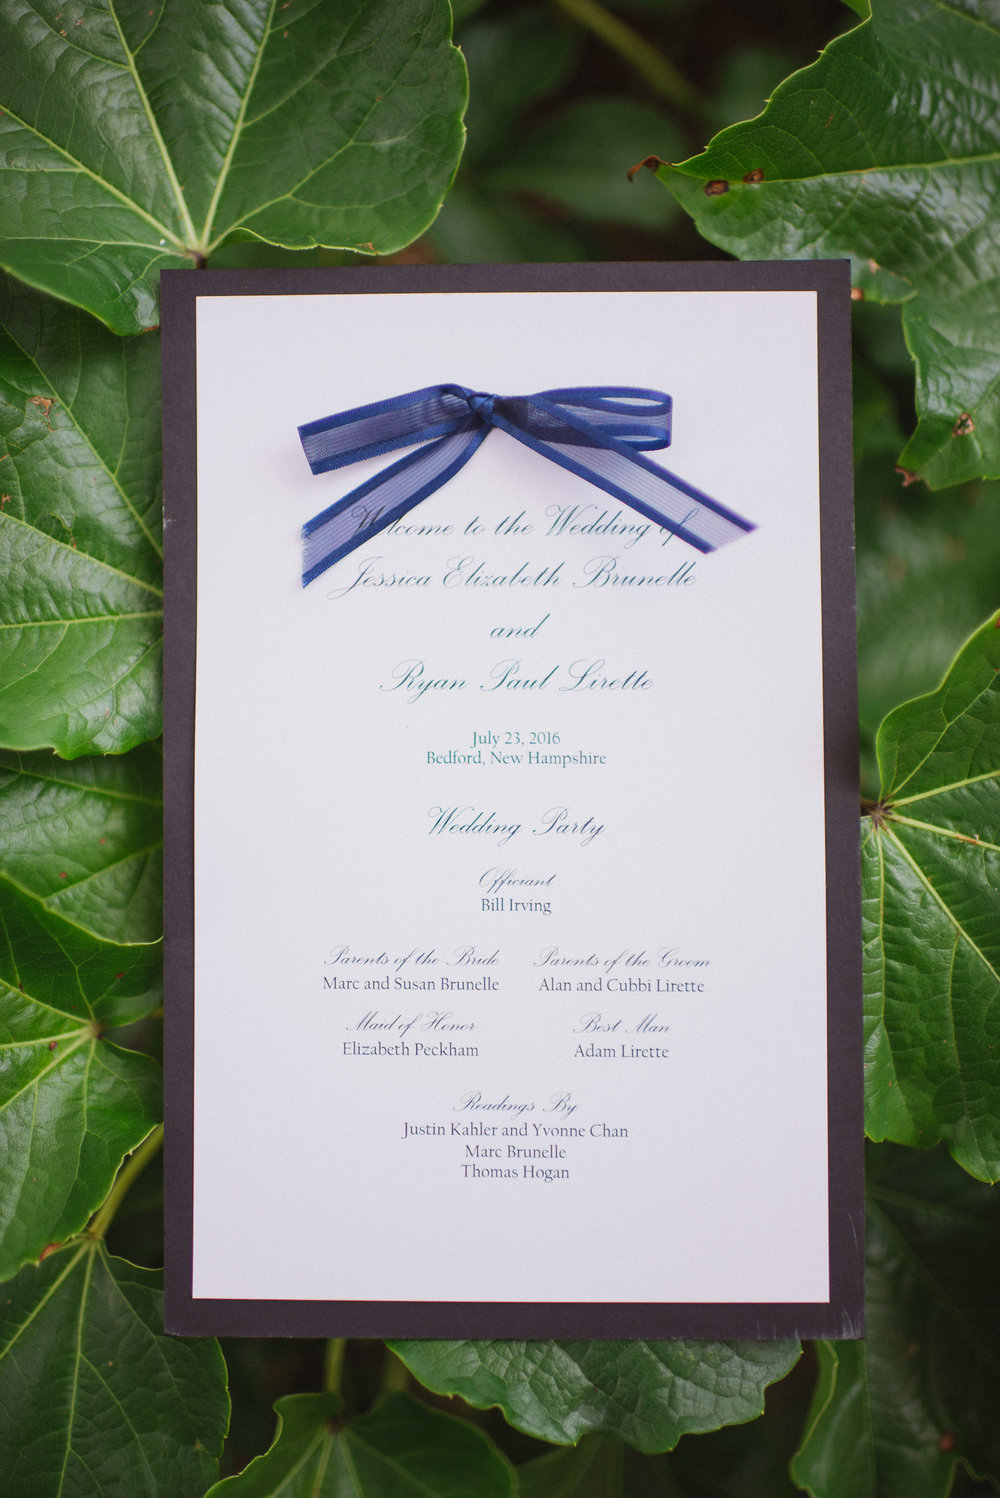 NH Wedding Photographer: invitation to BVI